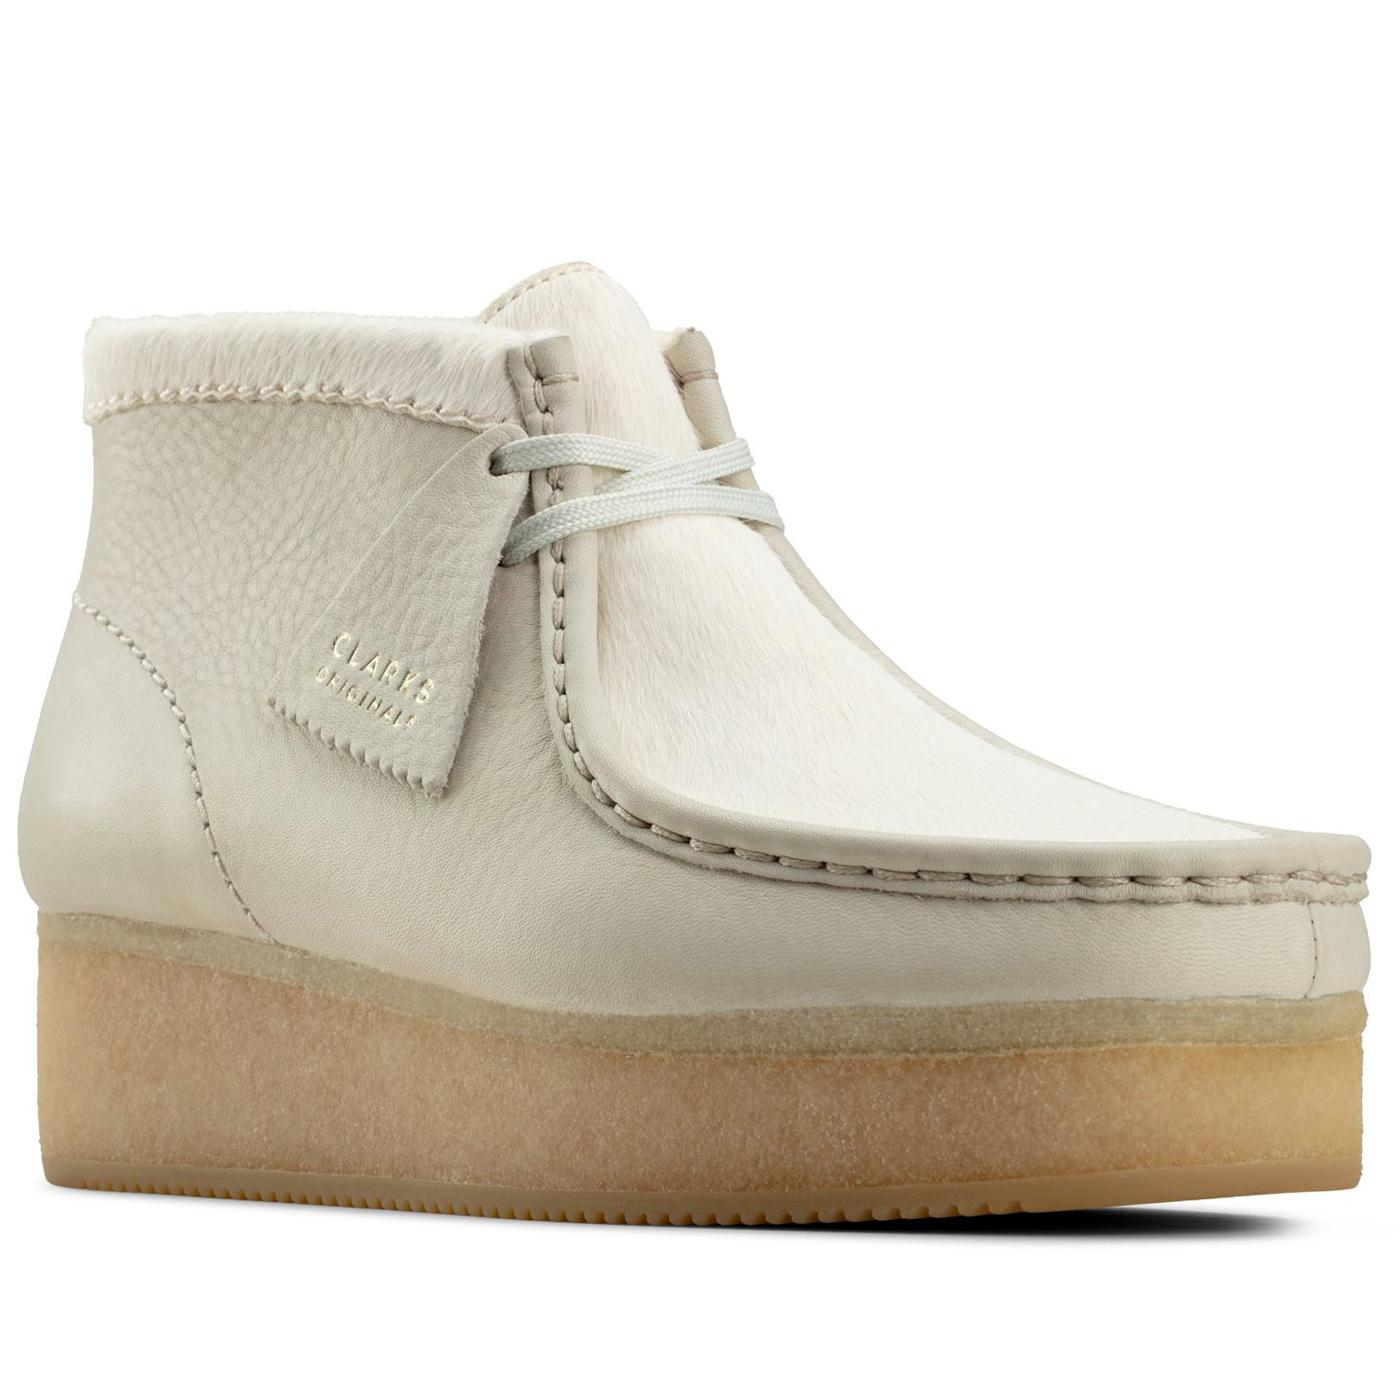 Wallabee Wedge CLARKS ORIGINALS Suede Boots (W)